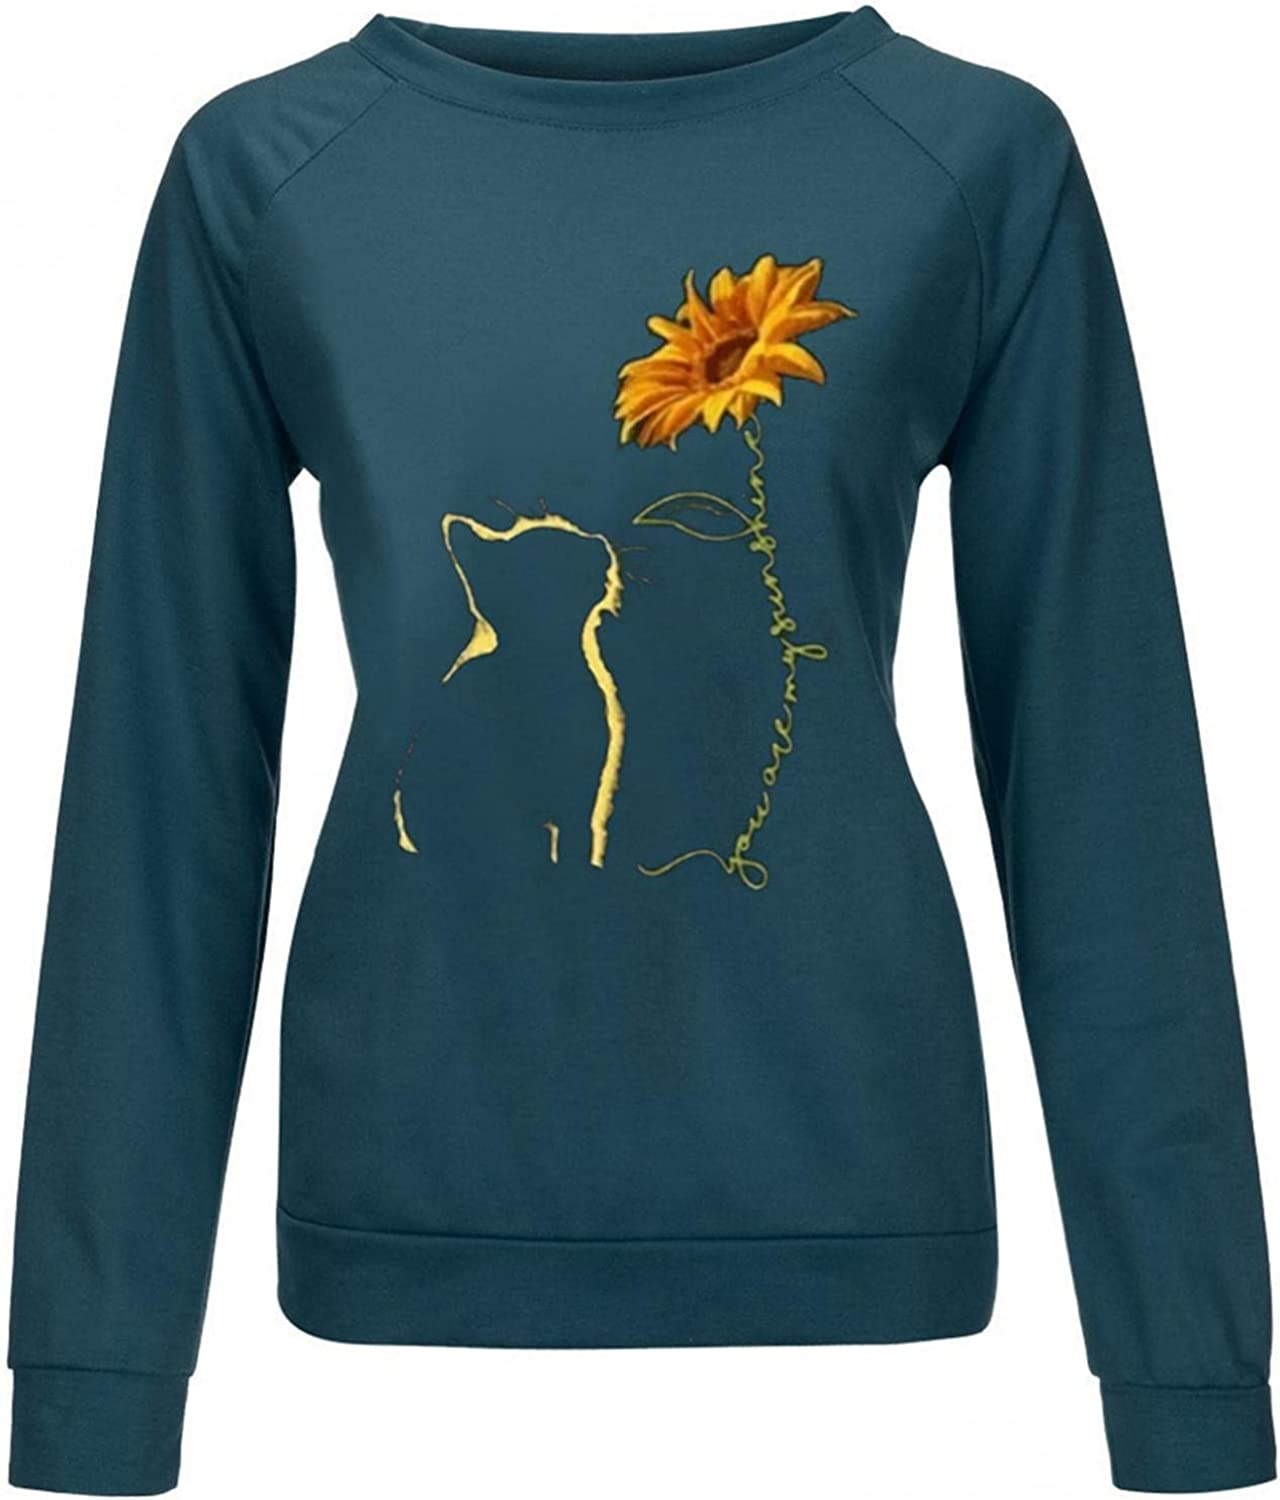 Toeava Long Sleeve Shirts for Women Casual Graphic Tee Shirts Crew Neck Sweatshirts Plus Size Pullover Sport Tunic Tops